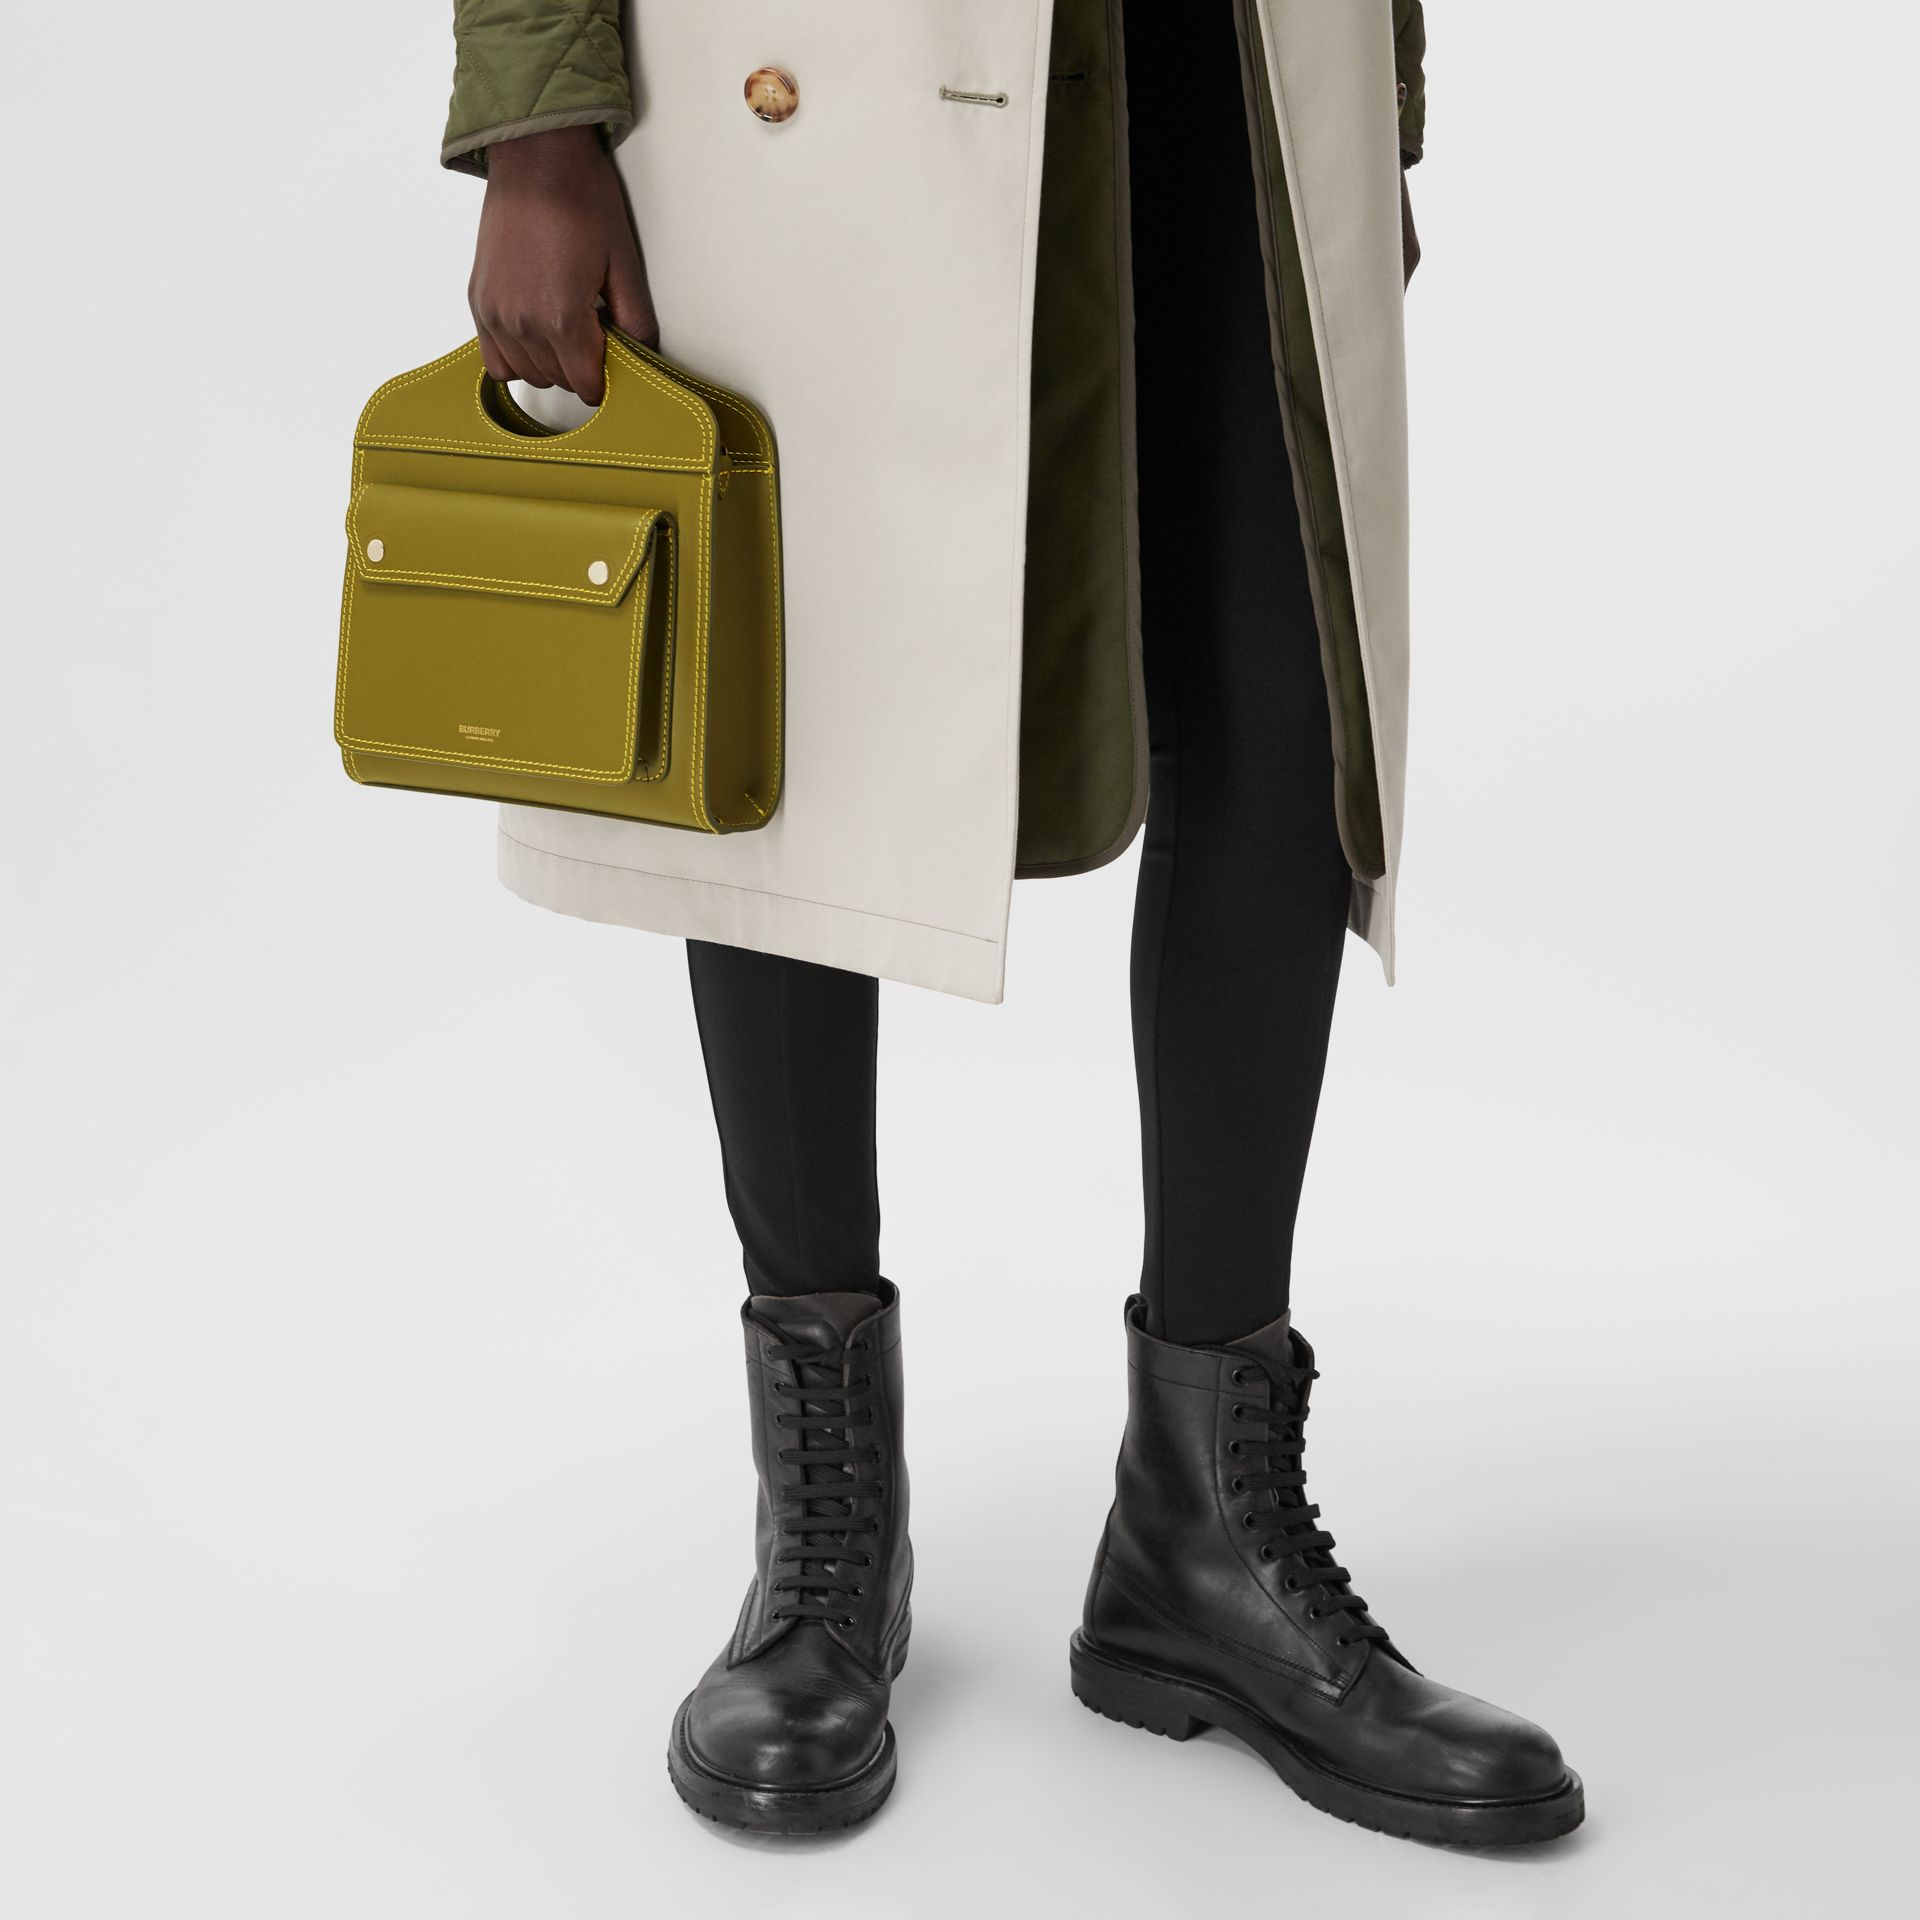 Mini sac Pocket en cuir surpiqué (Vert Genévrier) - Femme | Burberry Canada - photo de la galerie 8